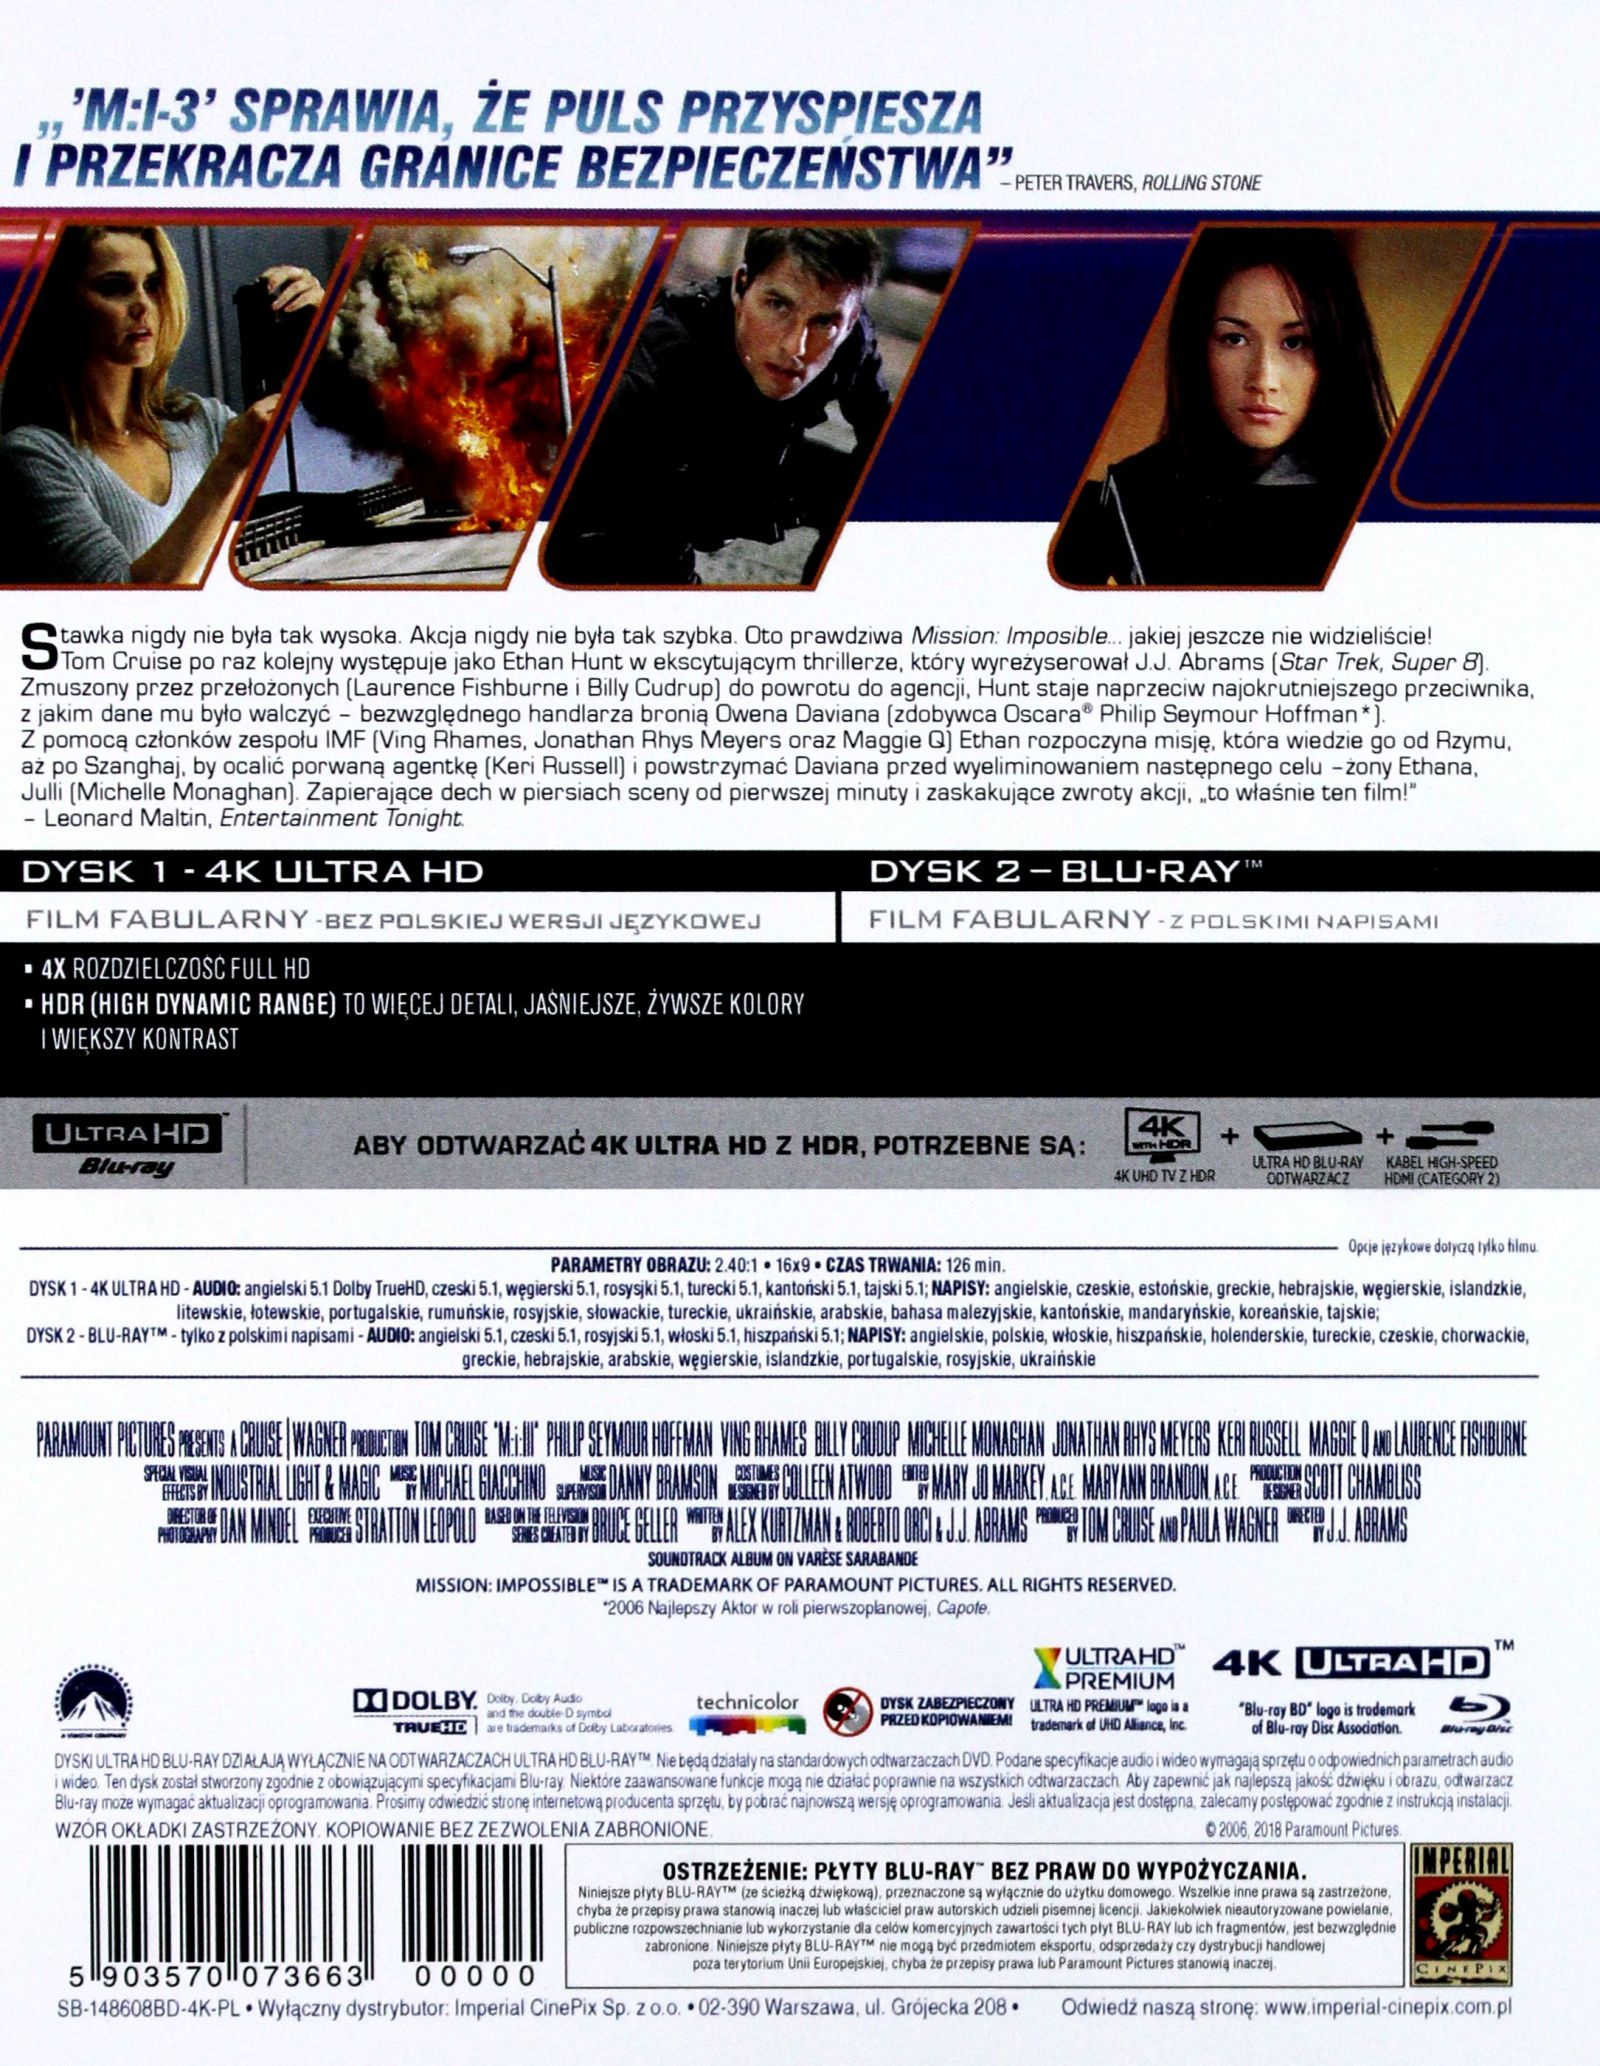 MISSION: IMPOSSIBLE III LIMITED STEELBOOK BLU-RAY